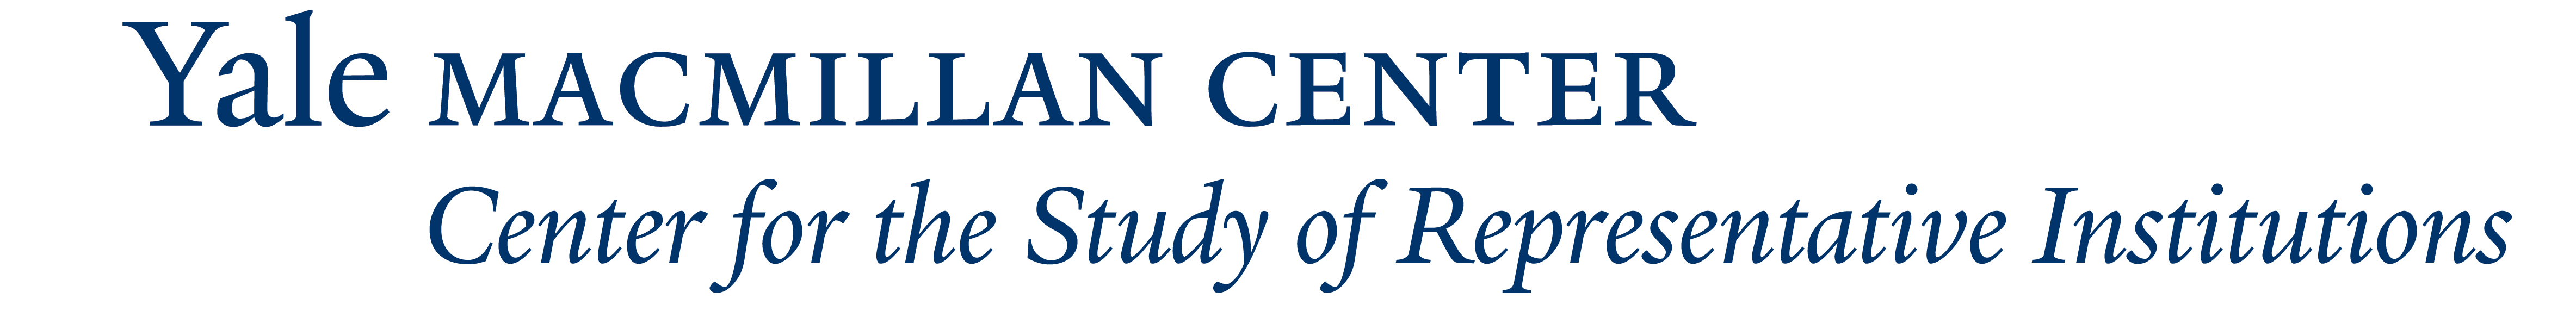 Yale MacMillan Center - Center for the Study of Representative Institutions